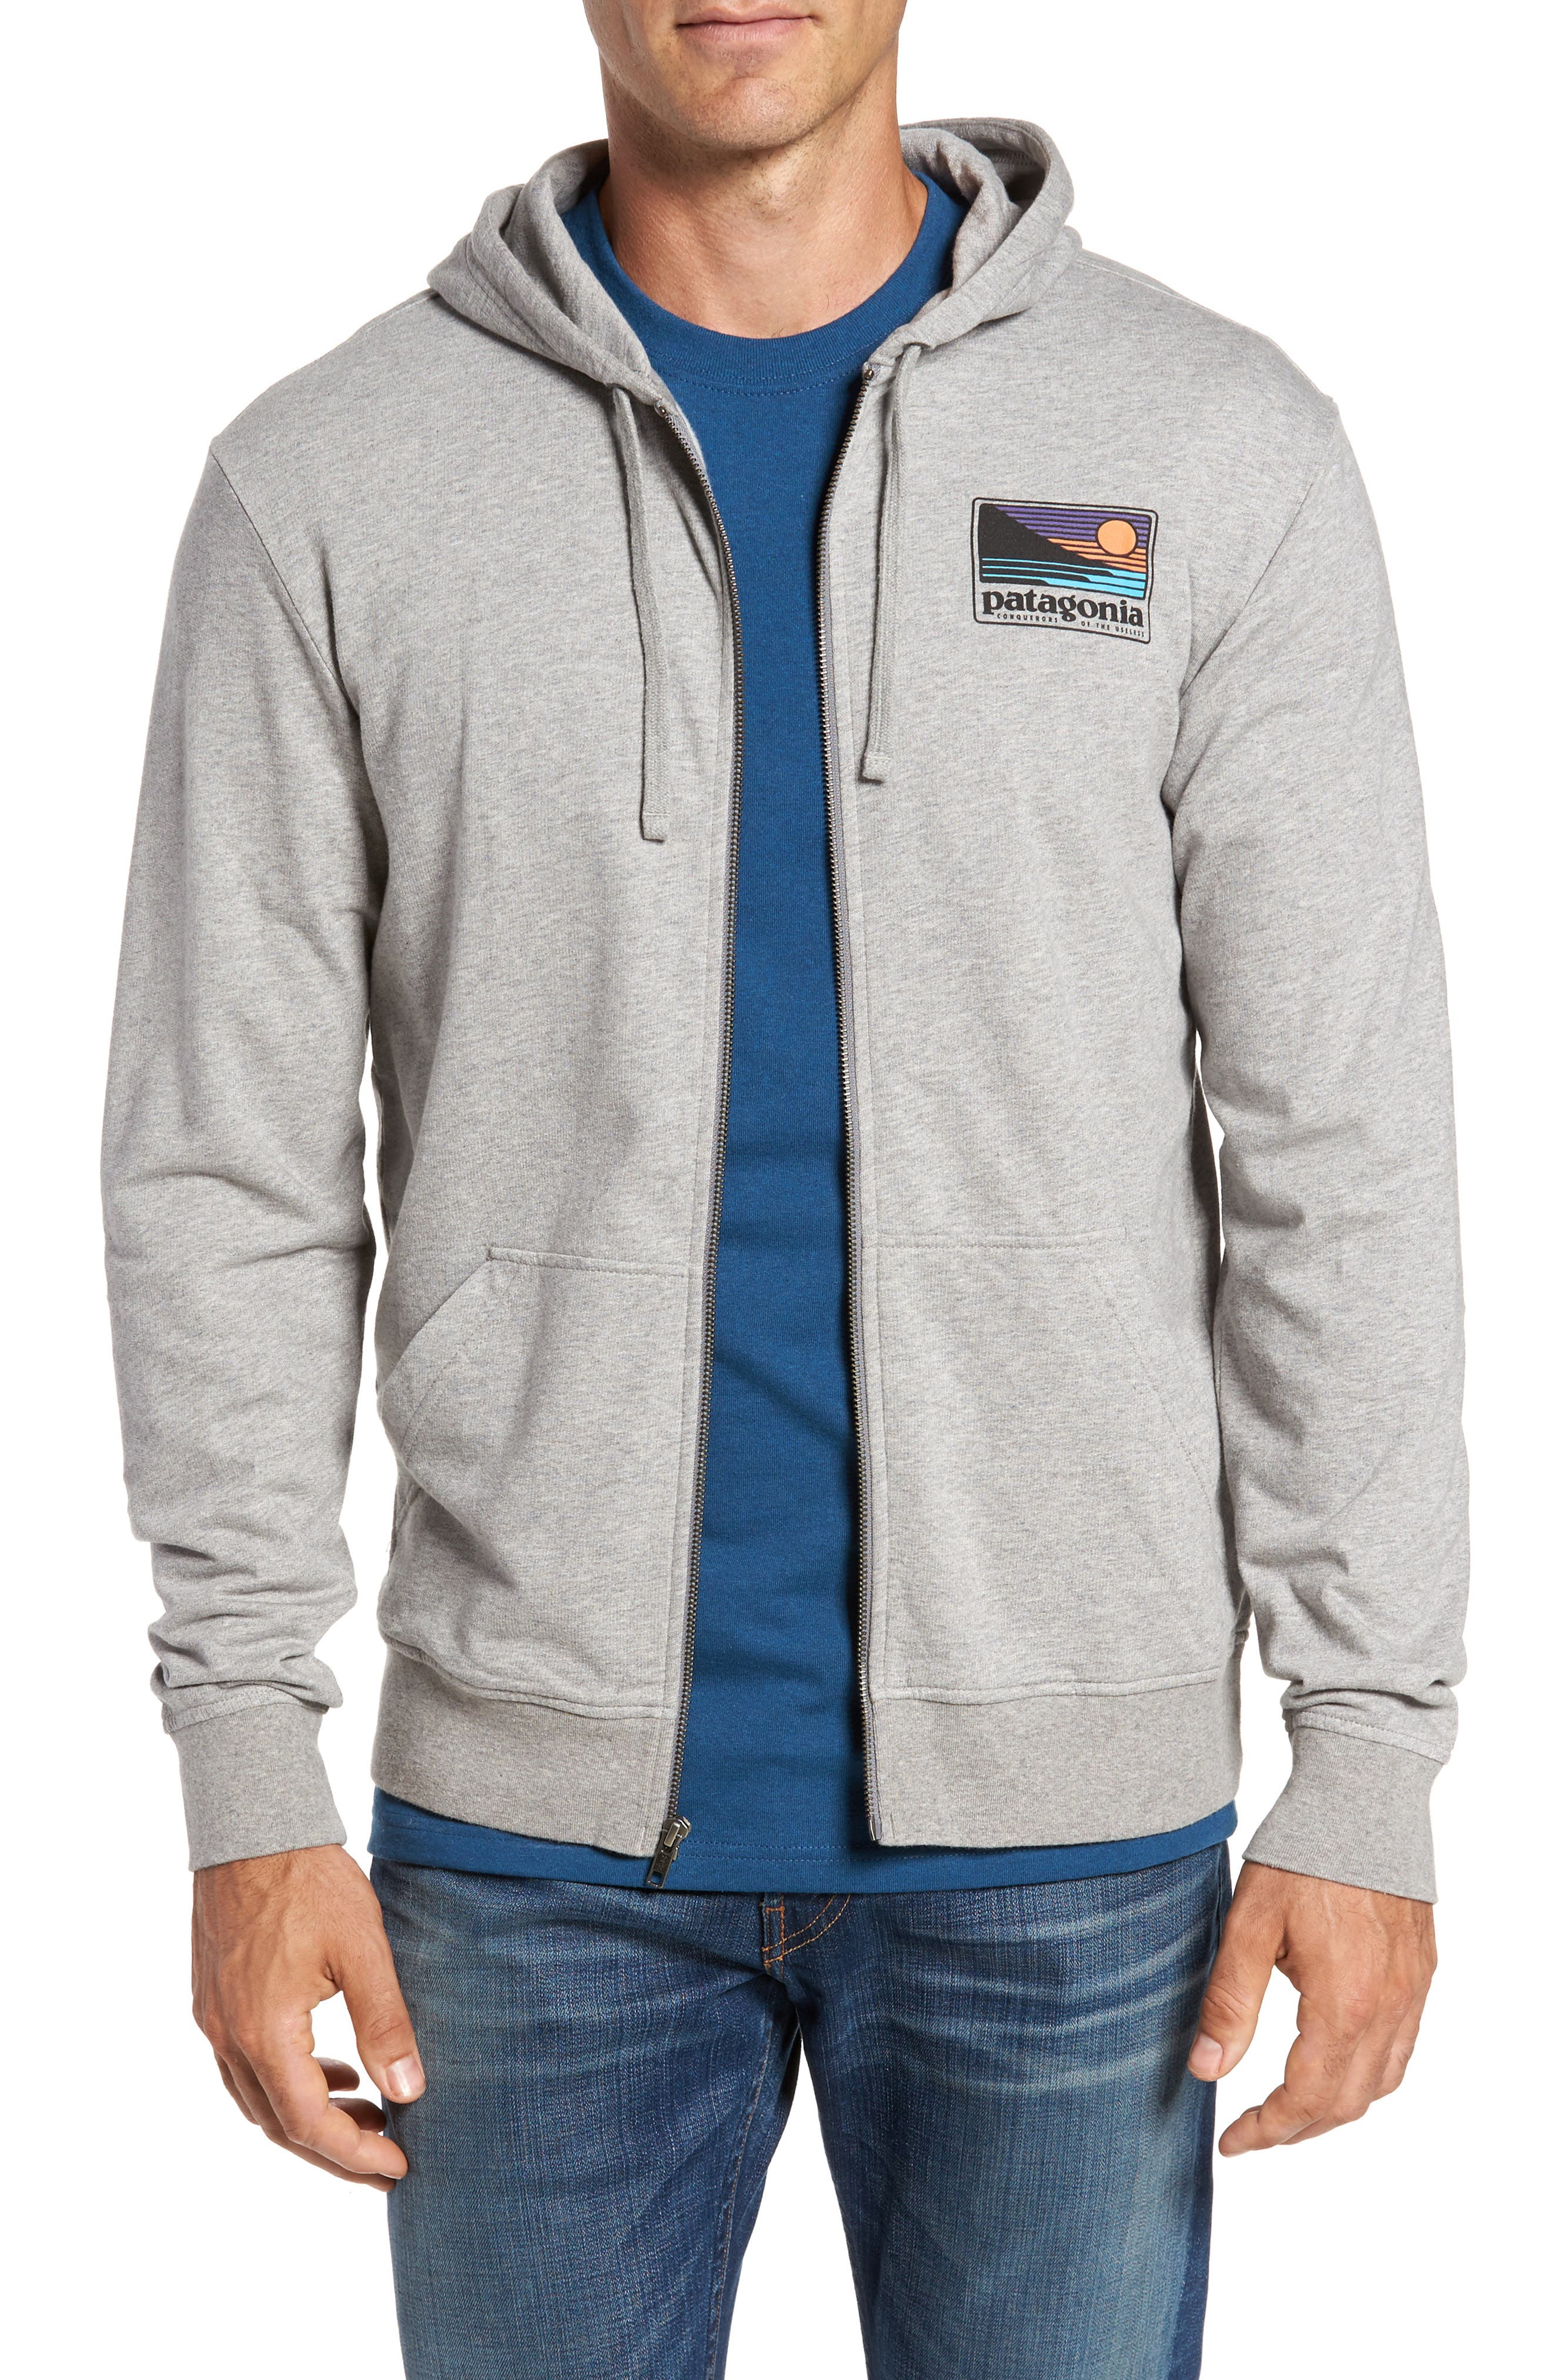 Up & Out Lightweight Zip Hoodie,                             Main thumbnail 1, color,                             020